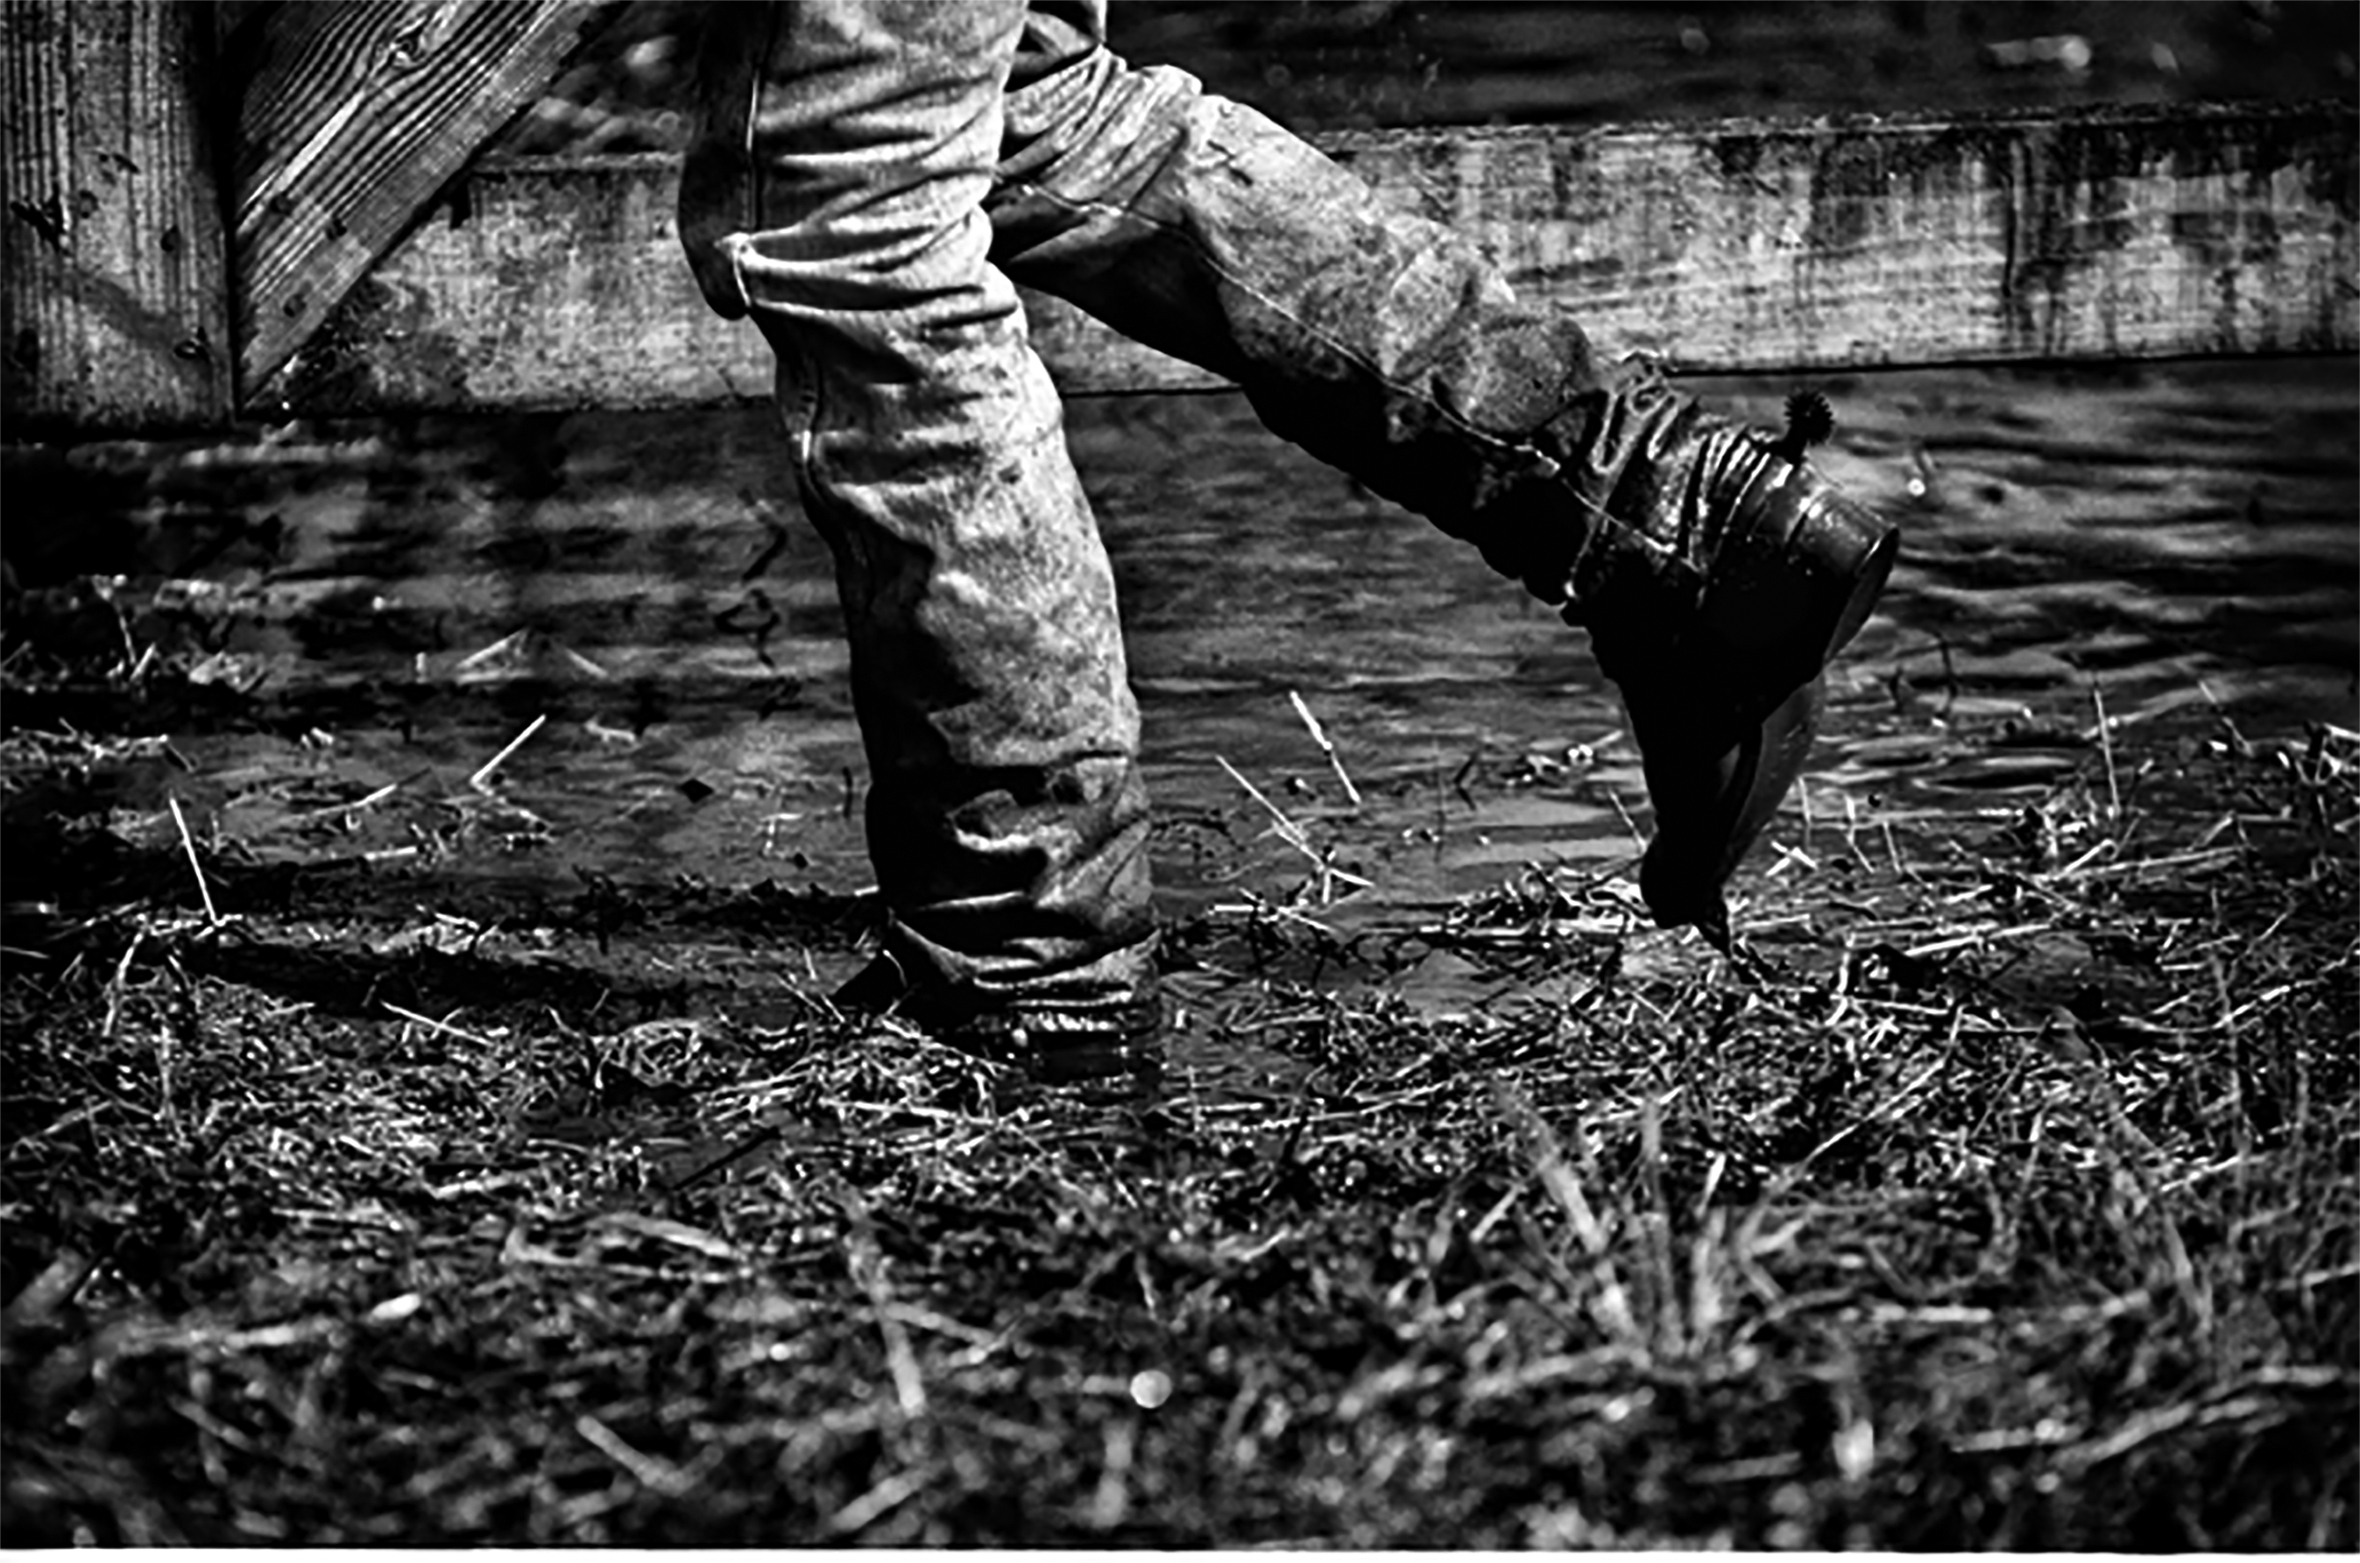 The leg's of a person in jeans and boots walking along the ground strewn with hay